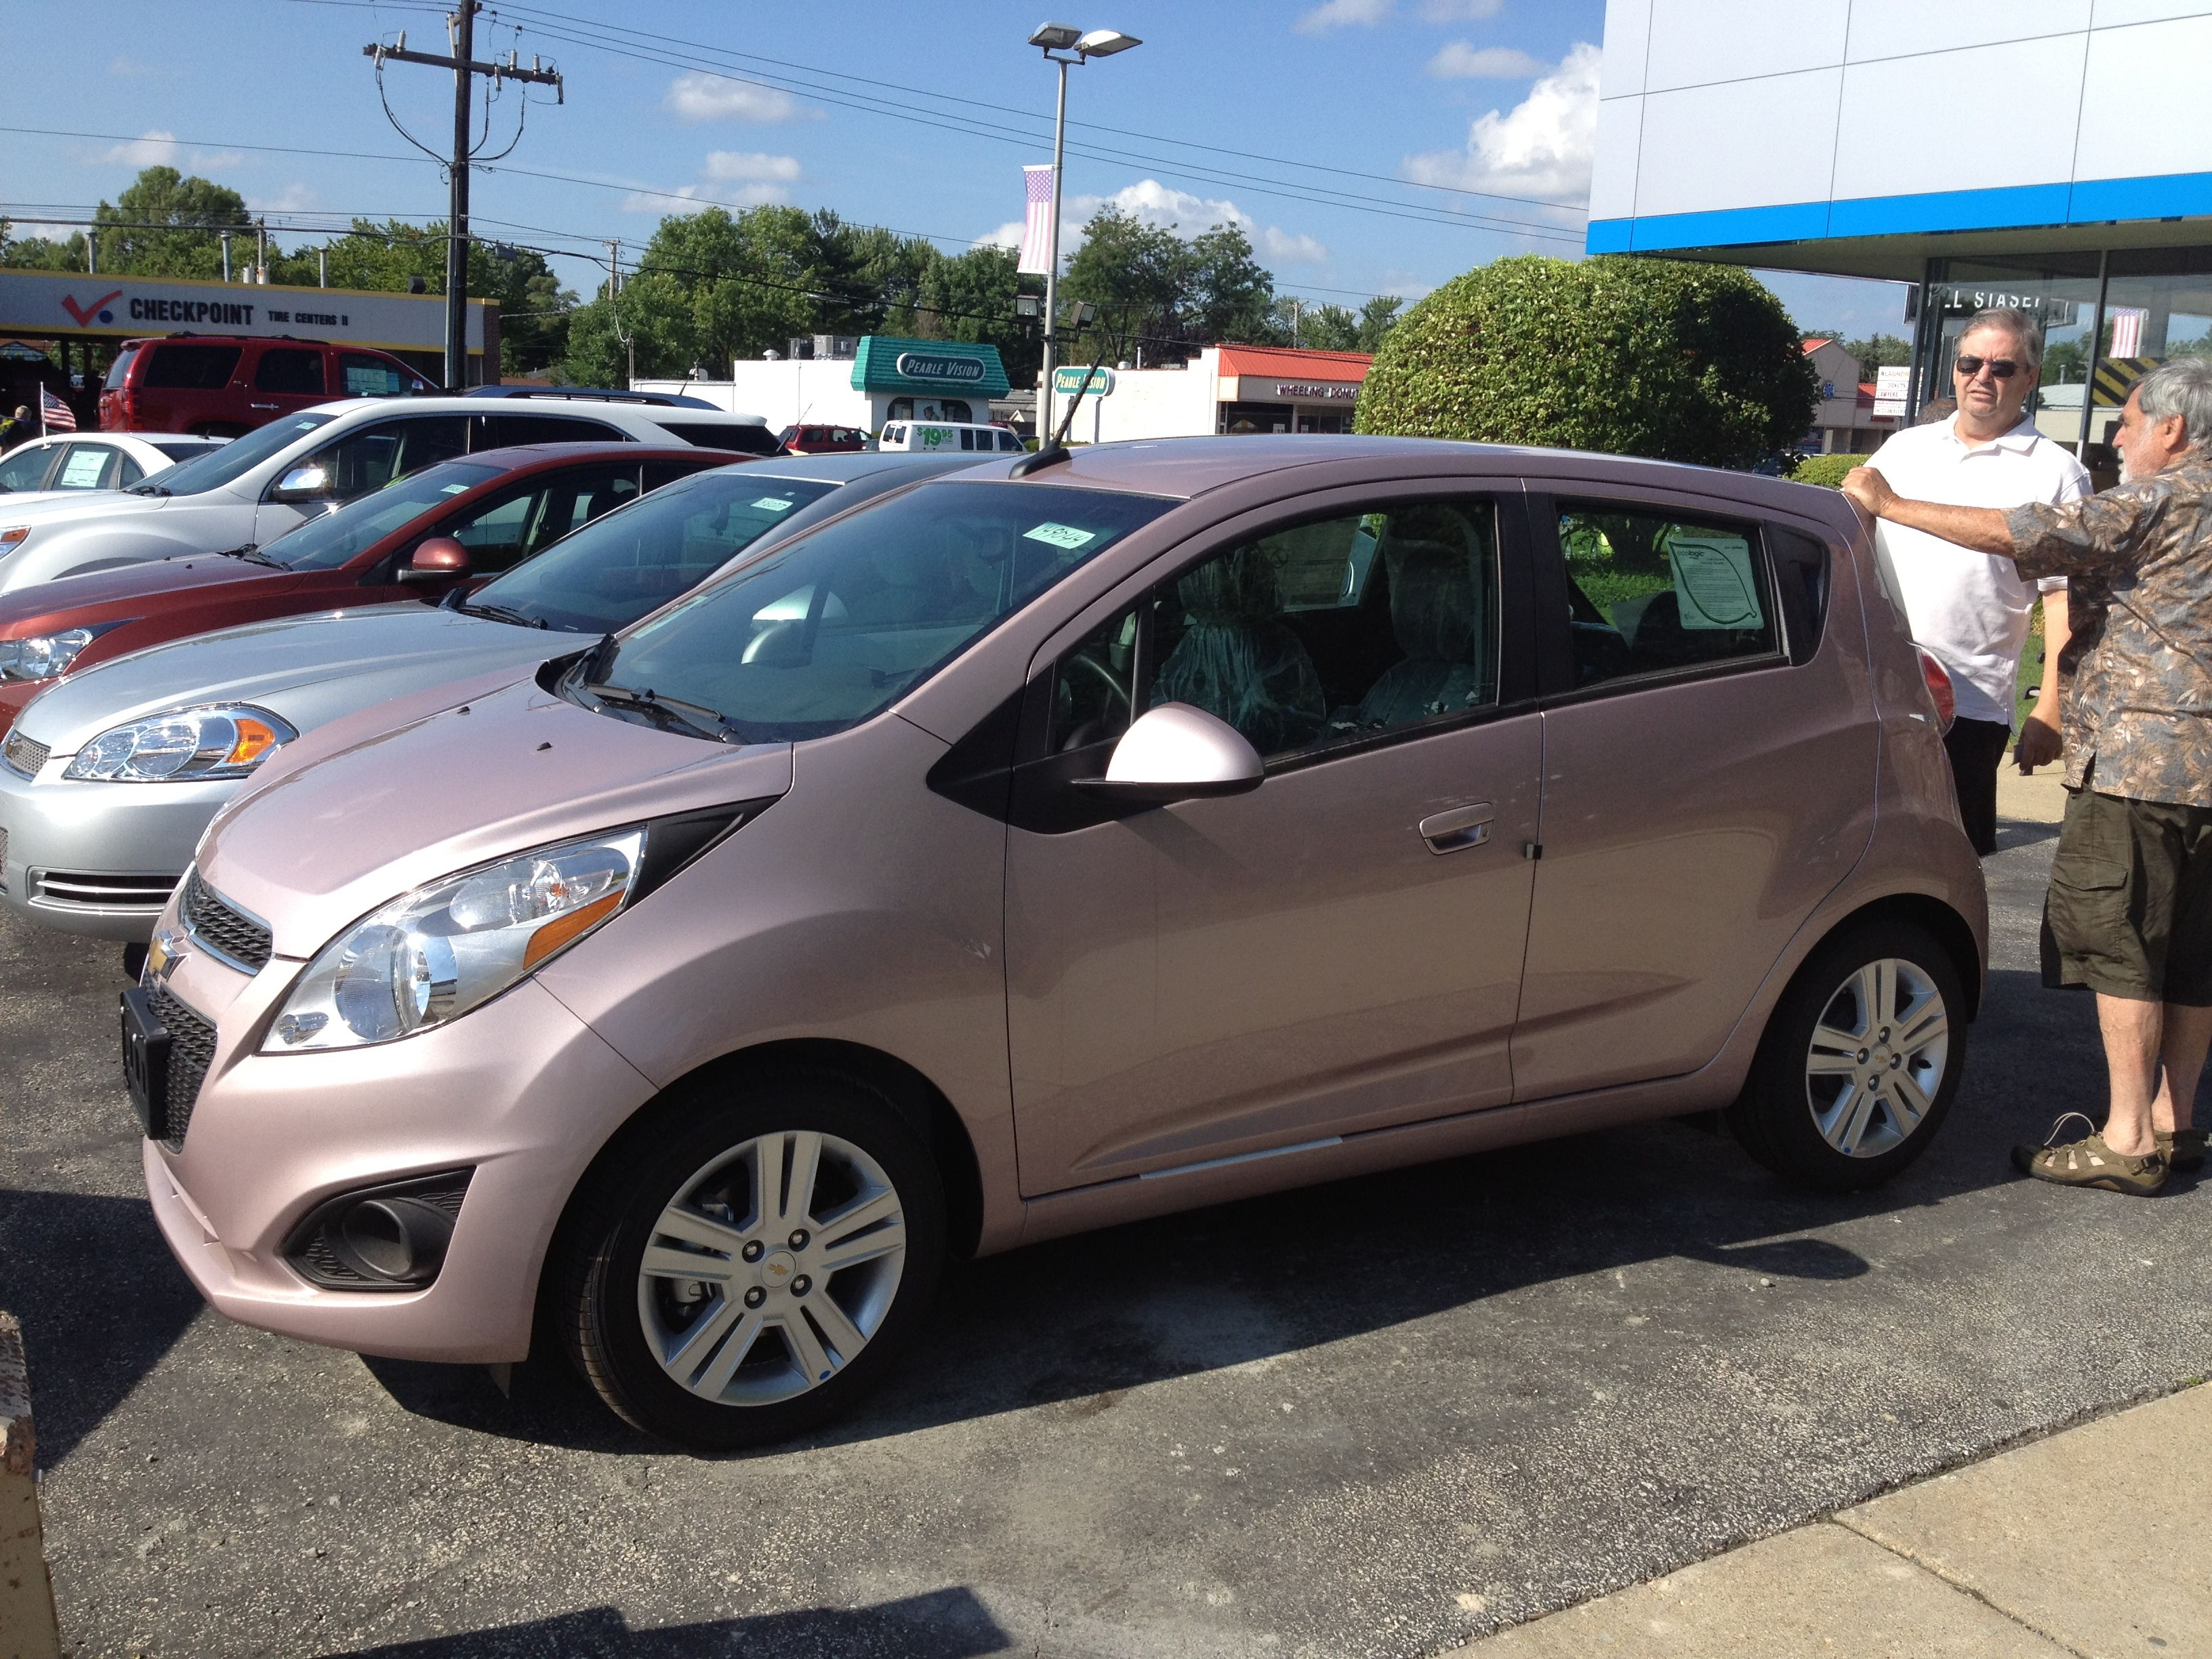 2015 Spark Fuel Efficient Car City Car Chevrolet Pink Chevy